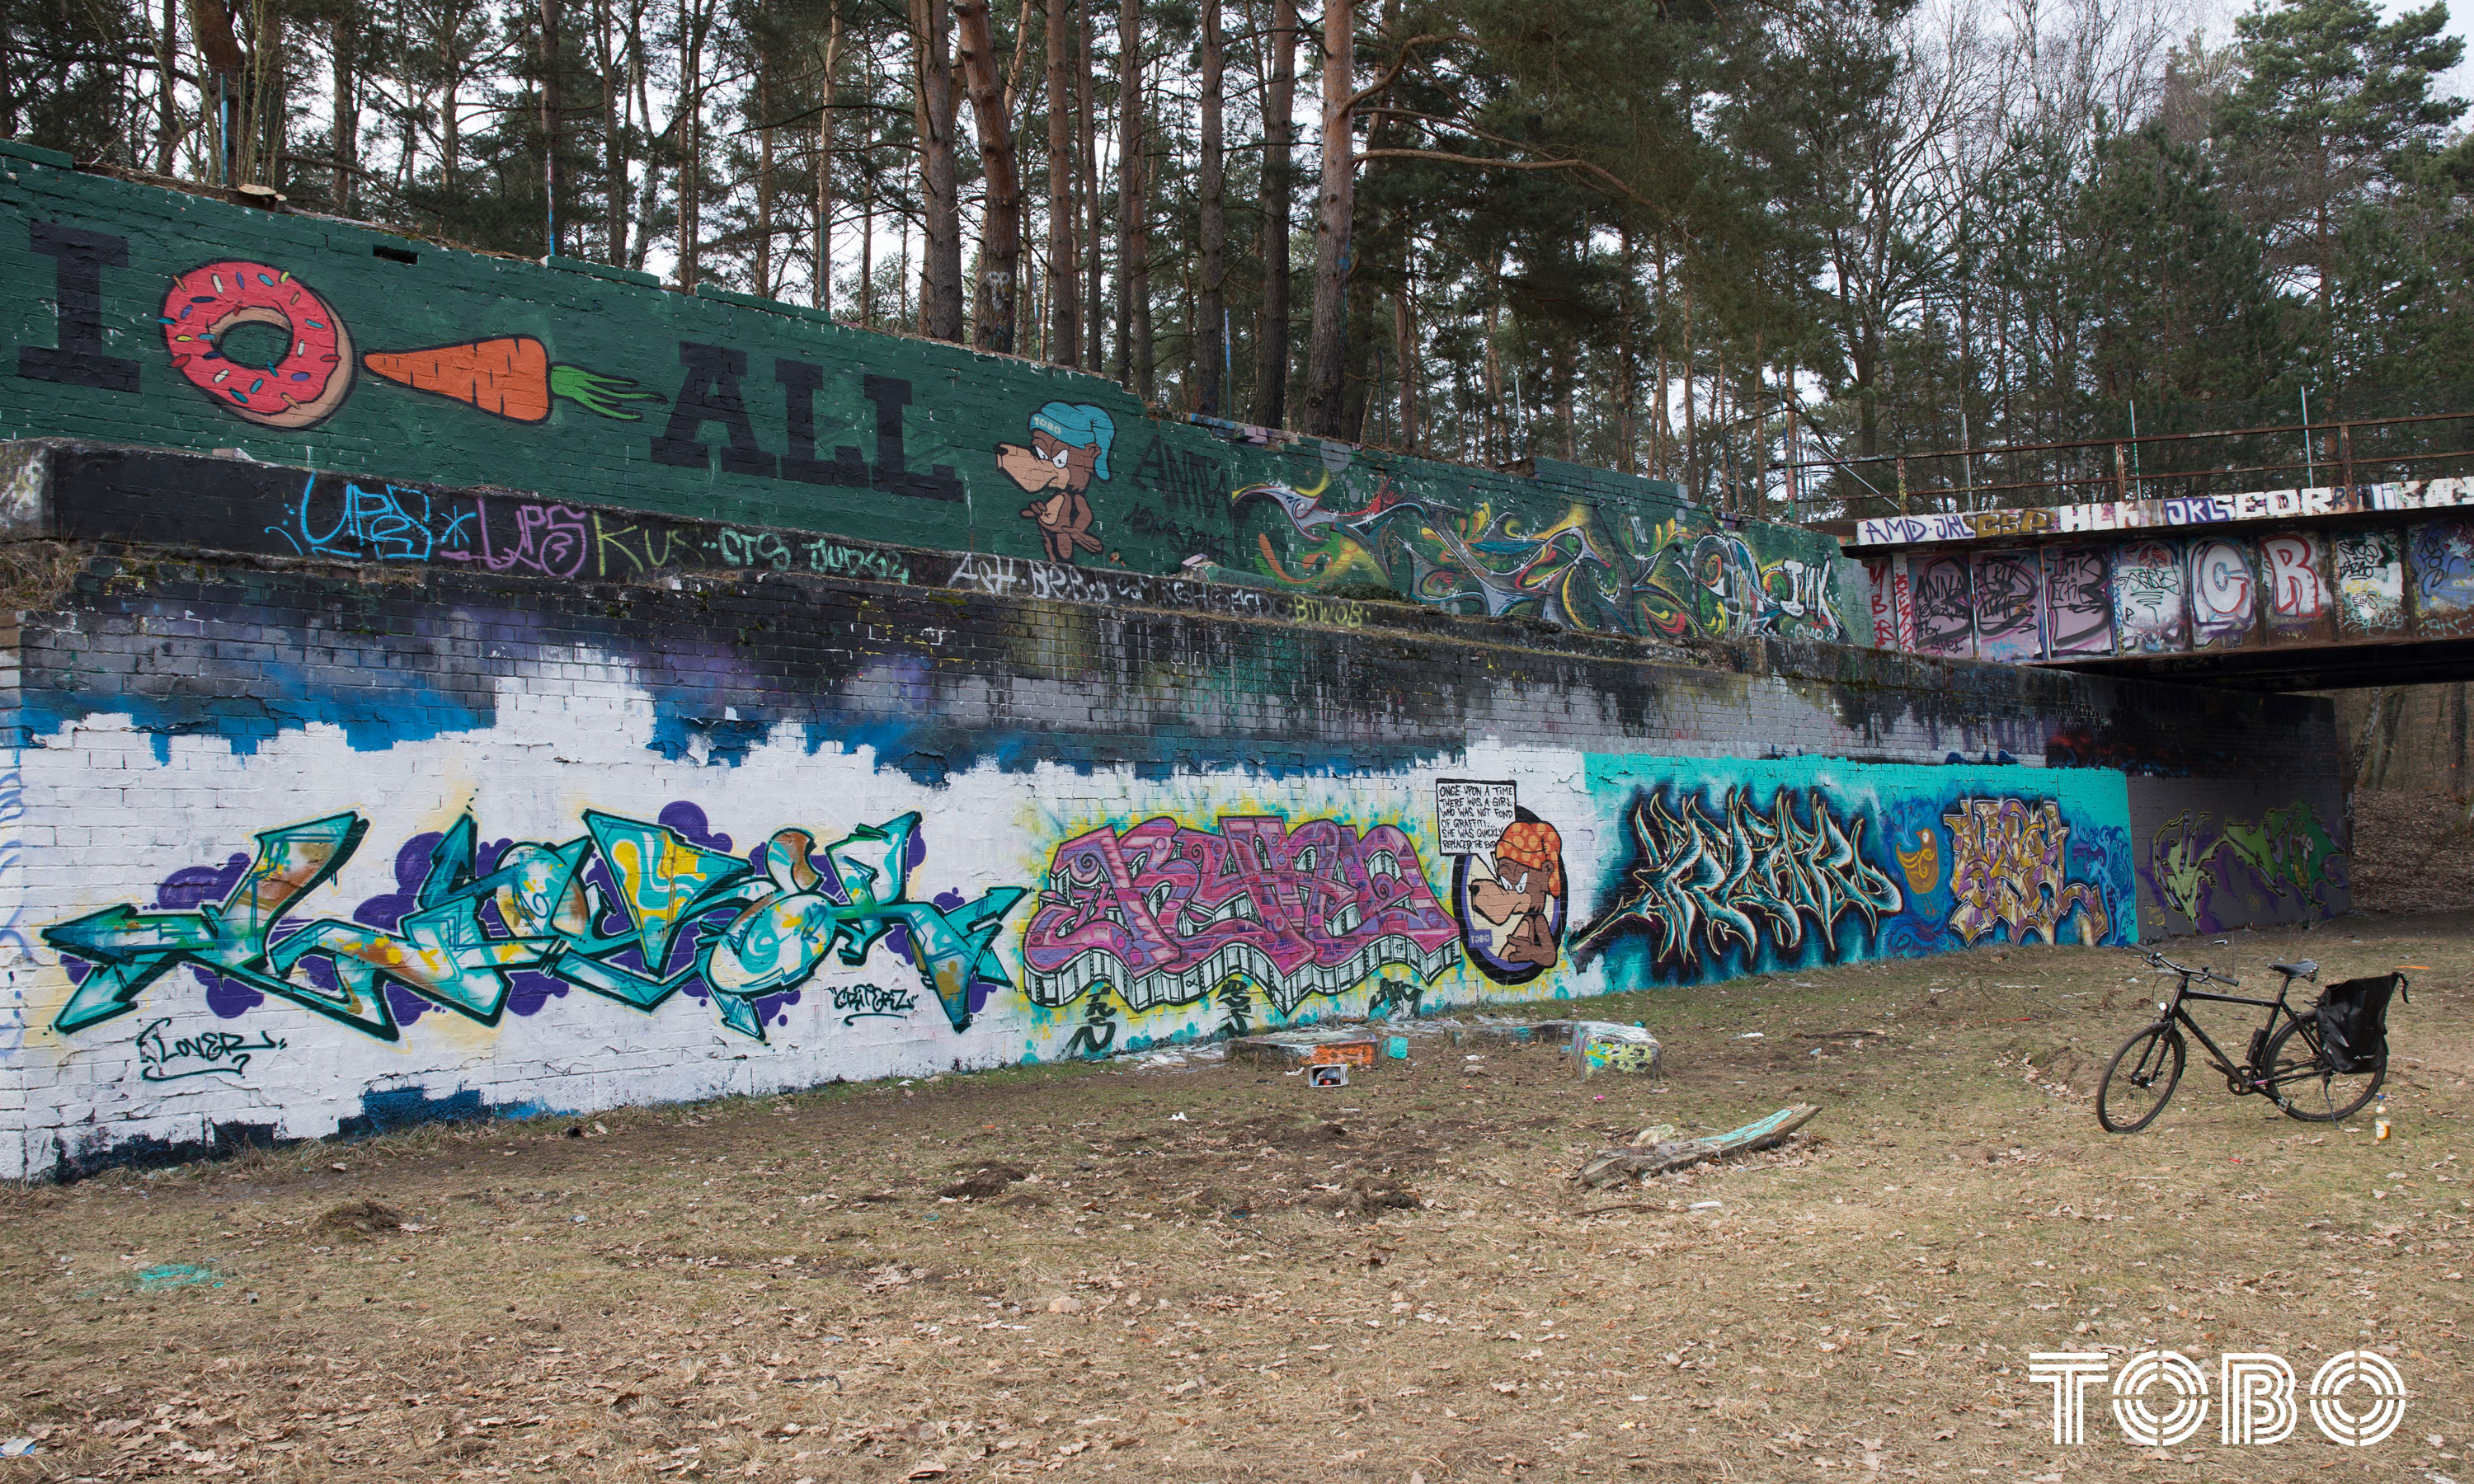 Tobo Erik Rotheim Graffiti Berlin Lover Criterz Dair DSF Trs riad skel potsdam klak alte autobahn hall of fame hitler autobahn forest wald nature kleinmachnow teltowkanal alte autobahn Once upon a time there was a girl that wasn't fond of graffiti. she was quickly replaced. the end